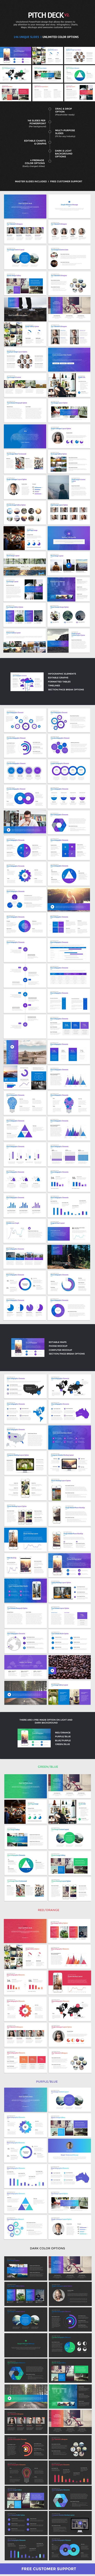 Pitch Deck Start Up Powerpoint - Pitch Deck PowerPoint Templates Download here: https://graphicriver.net/item/pitch-deck-start-up-powerpoint/12253011?ref=classicdesignp